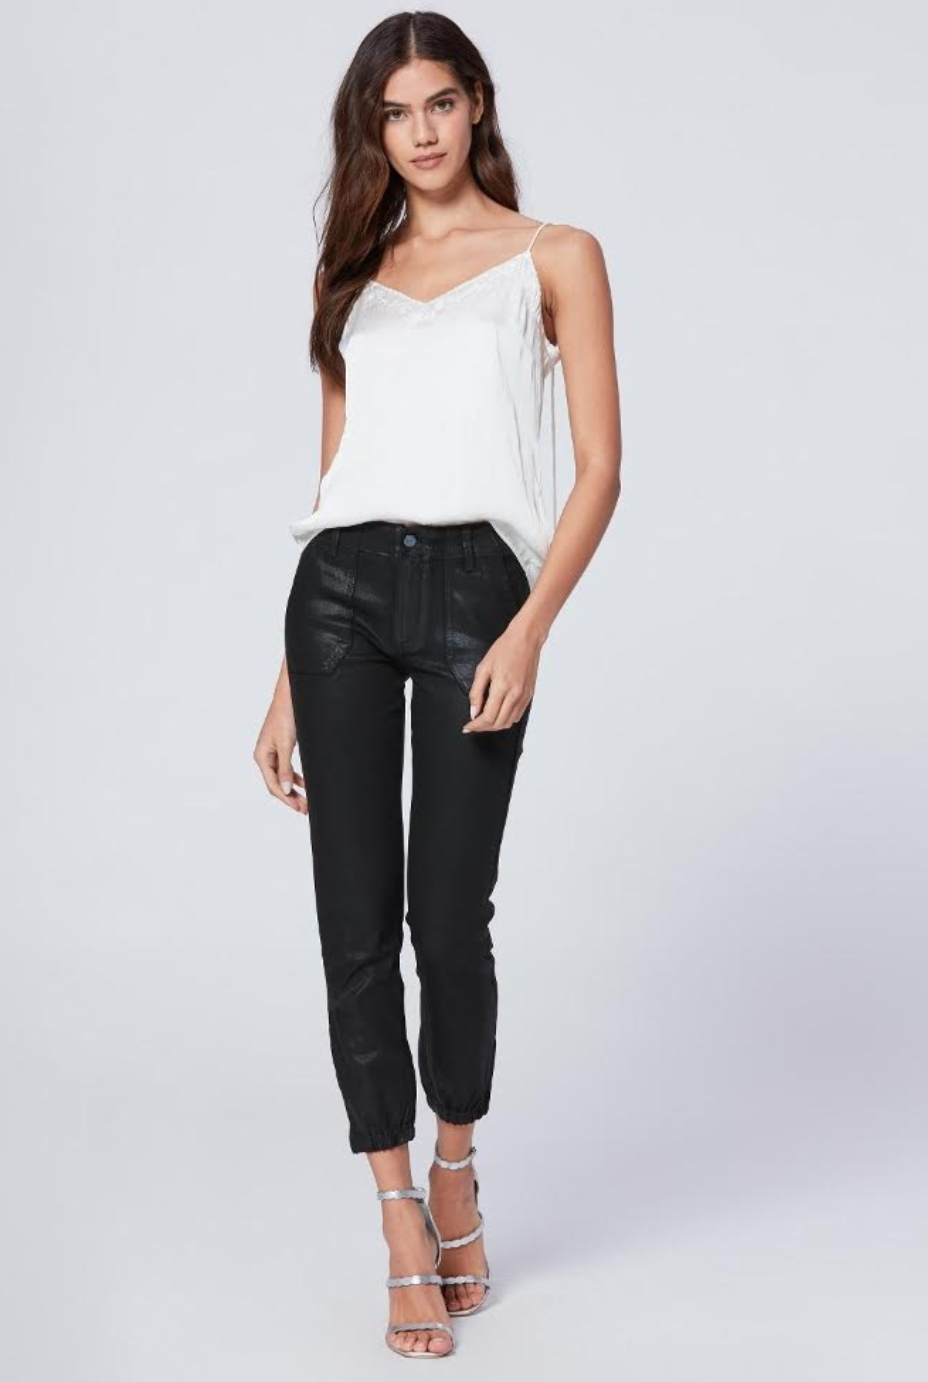 white top & black jeans